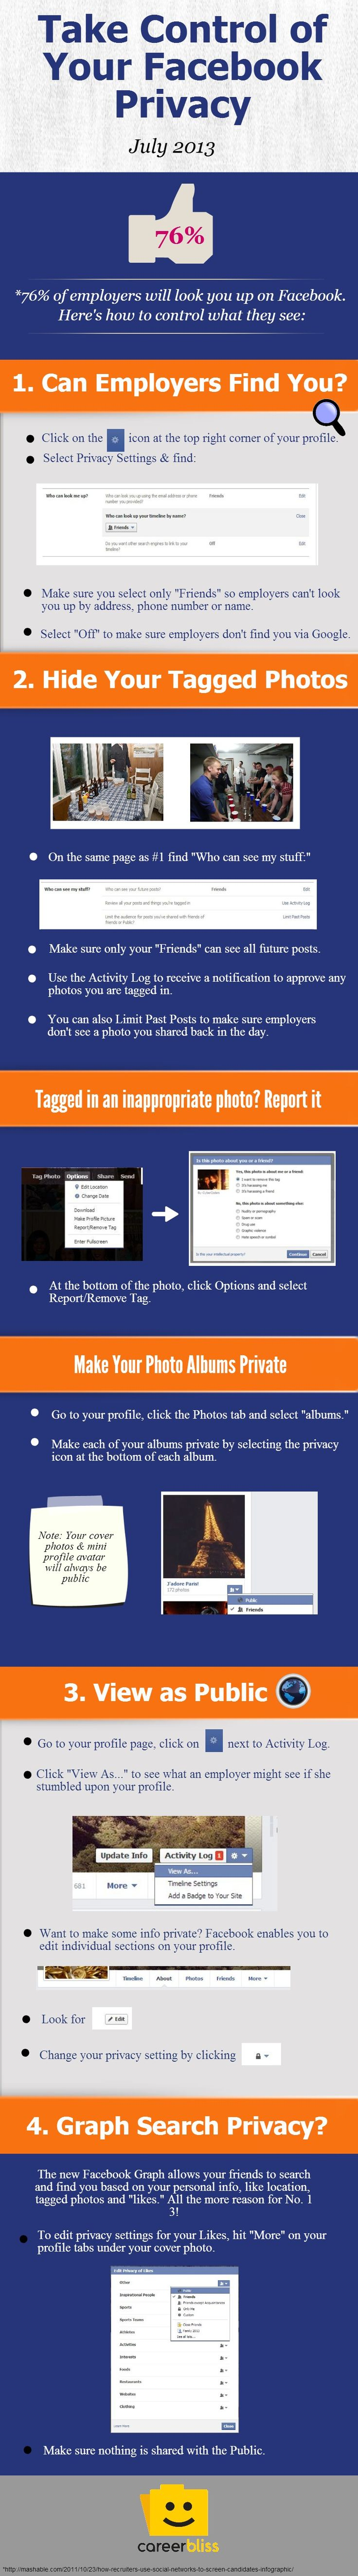 Dear students and grads, please care for your privacy! Infographic: Take Control of Your Facebook Privacy | CareerBliss